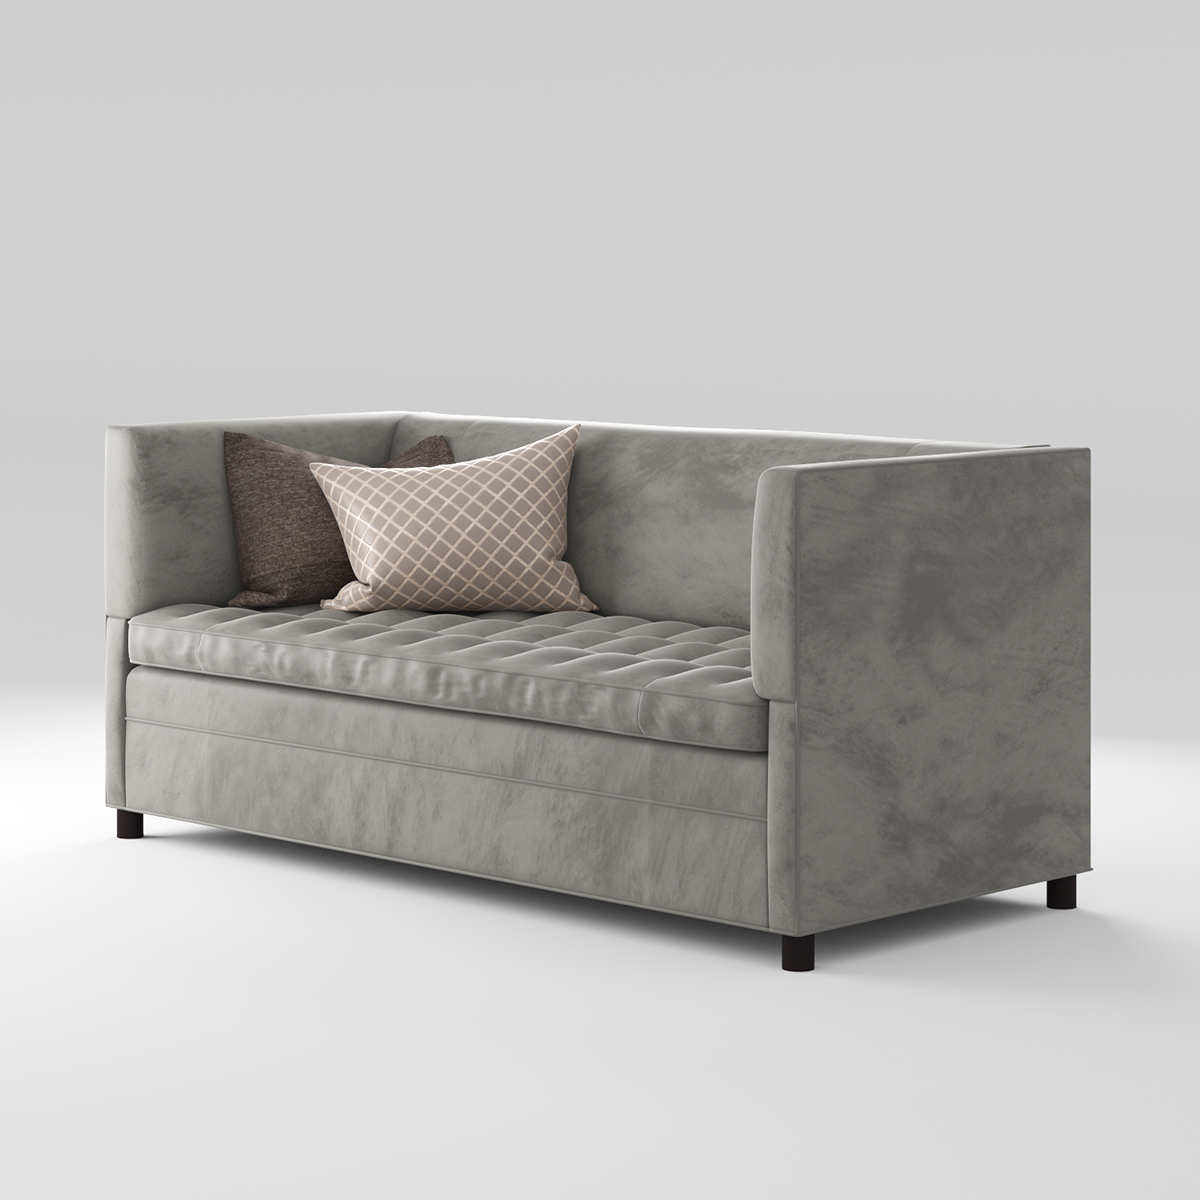 Miraculous Old Hickory Tannery Strauss Sofa On Behance Cjindustries Chair Design For Home Cjindustriesco